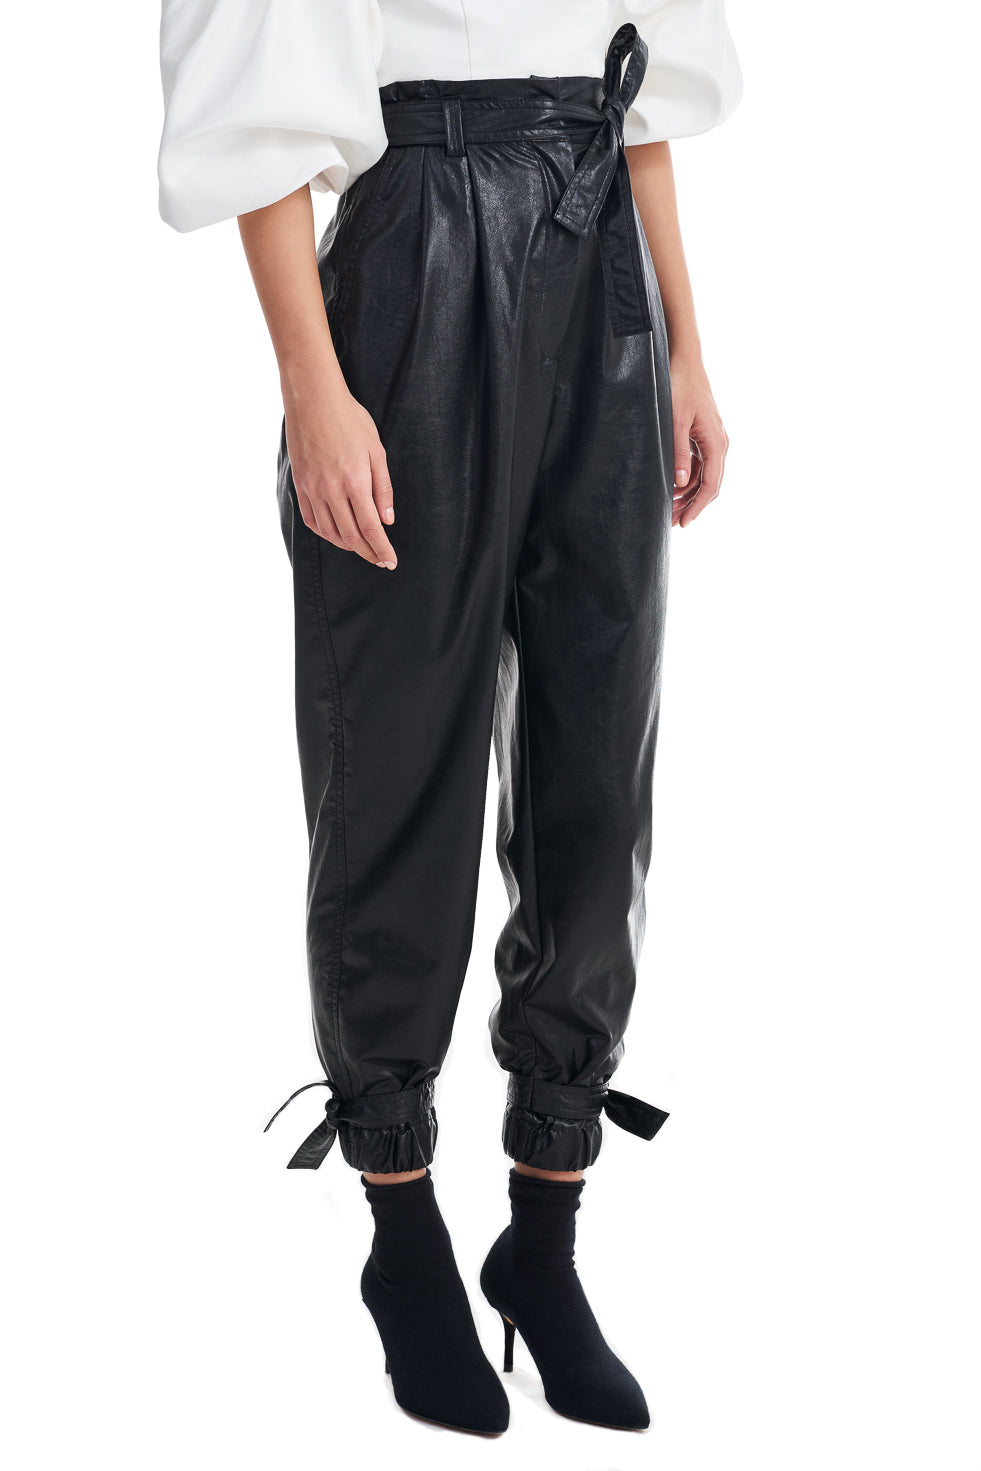 Susan Black Faux Leather Cuff High Waist Trousers